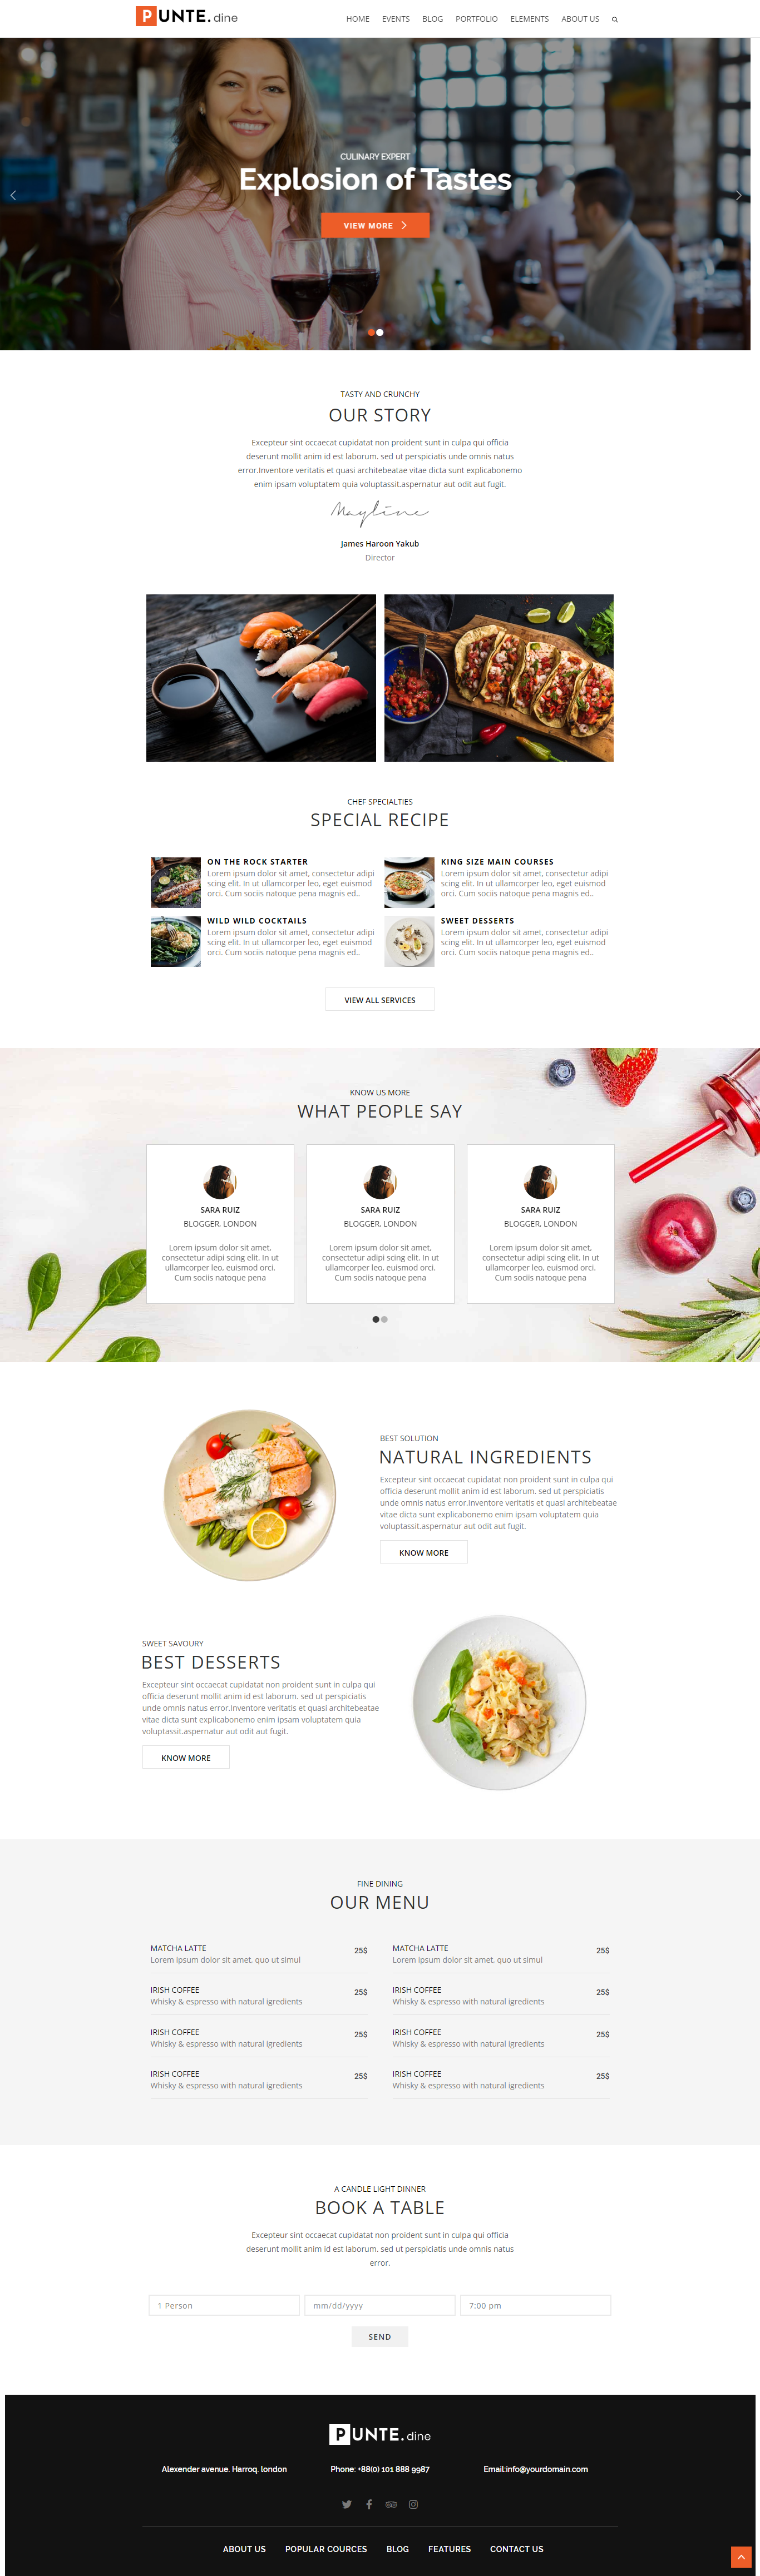 Punte Restaurant Website Theme